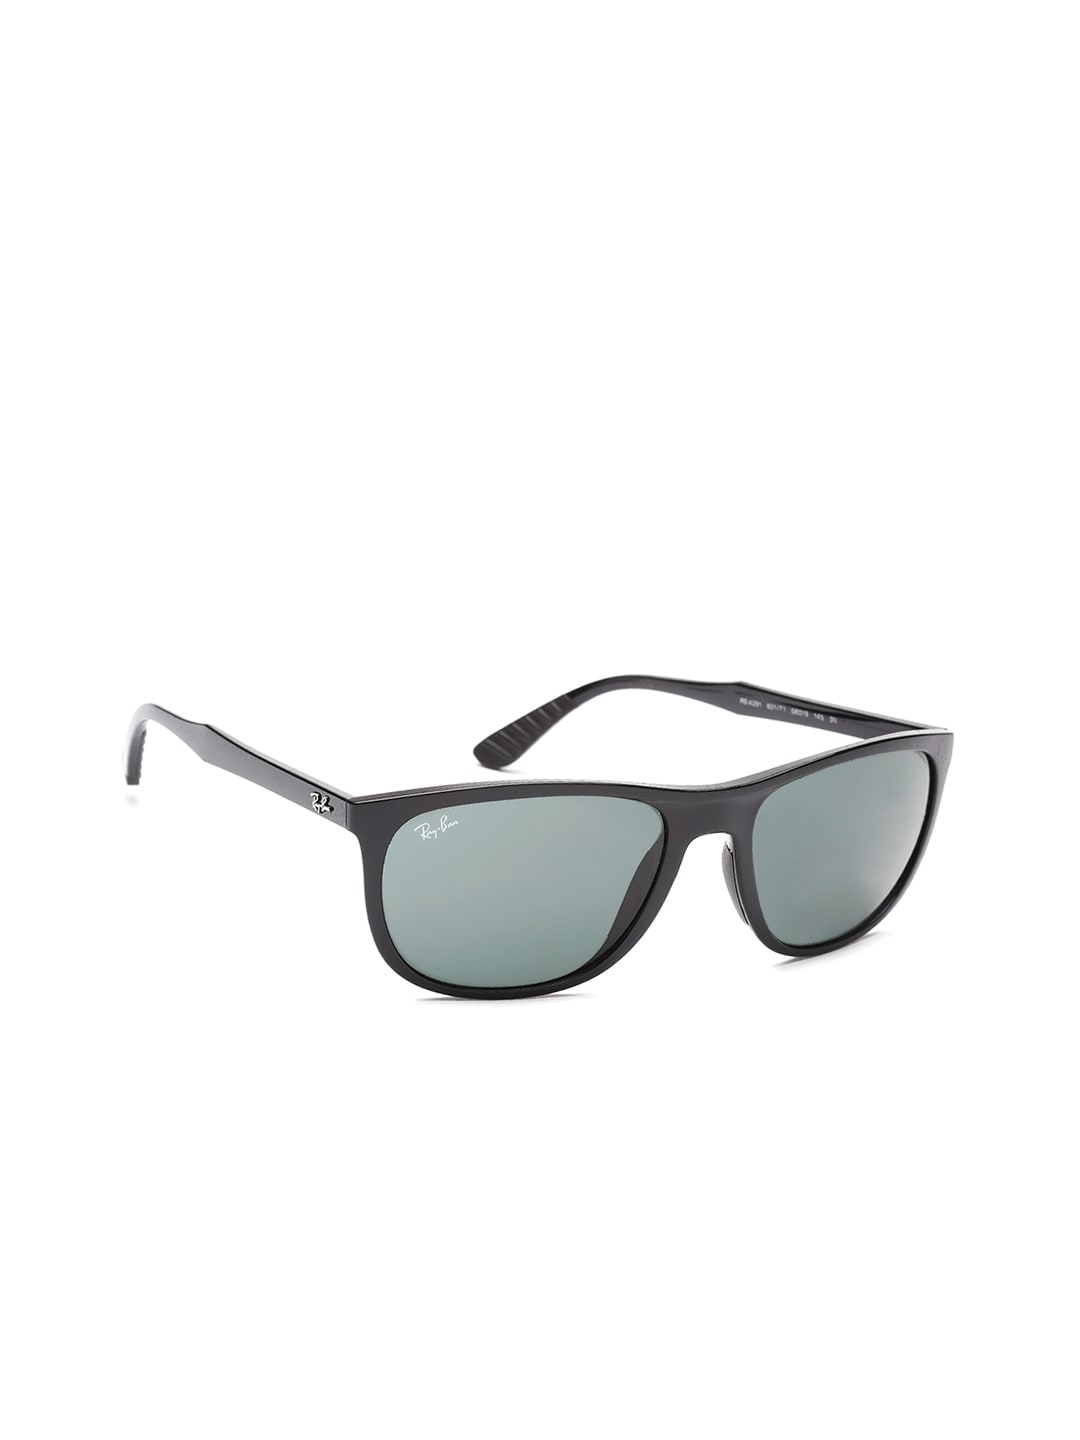 2492d9087d4 Ray Ban - Buy Ray Ban Sunglasses   Frames Online In India